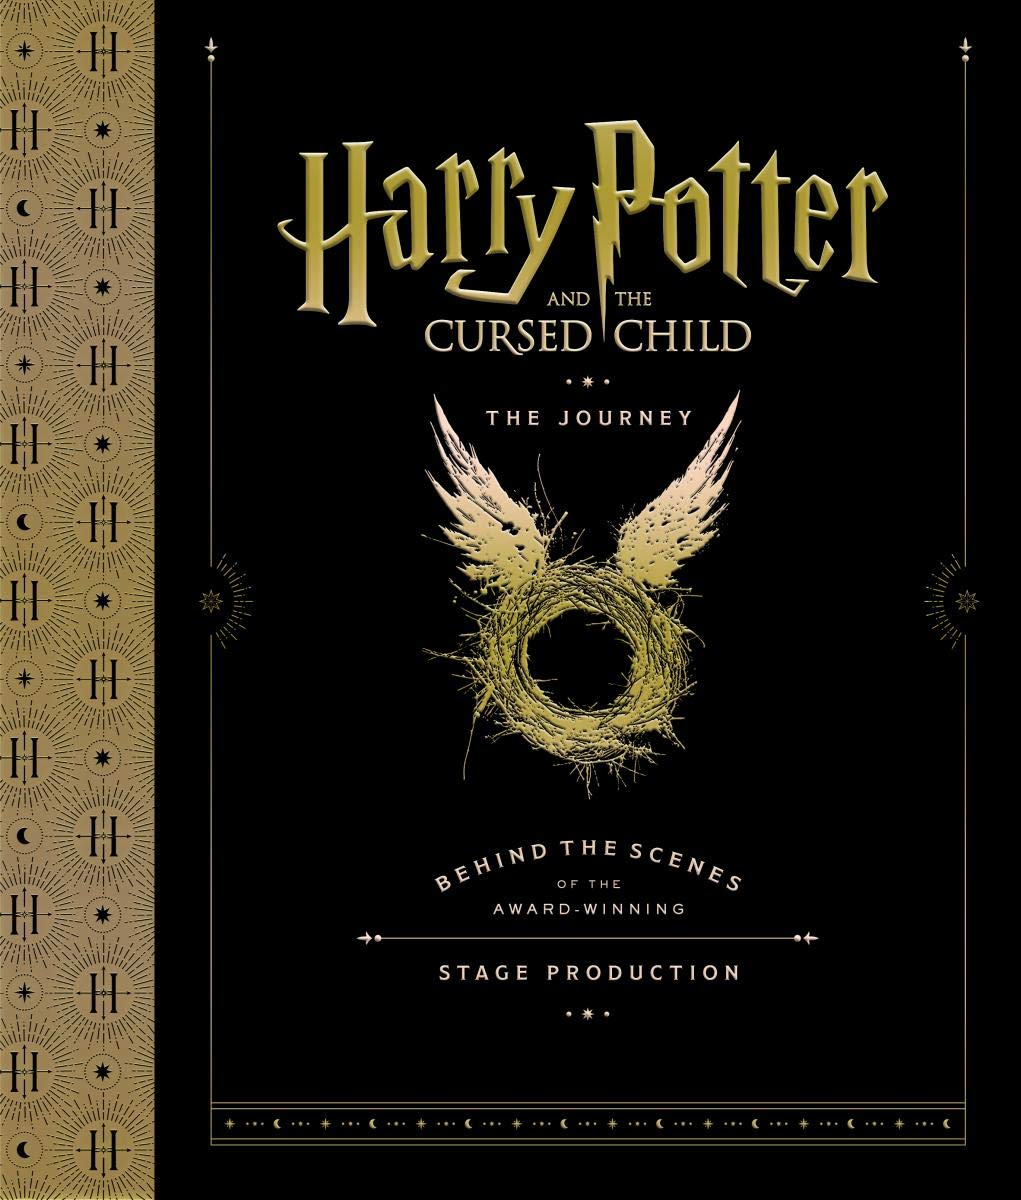 harry potter cursed child journey cover